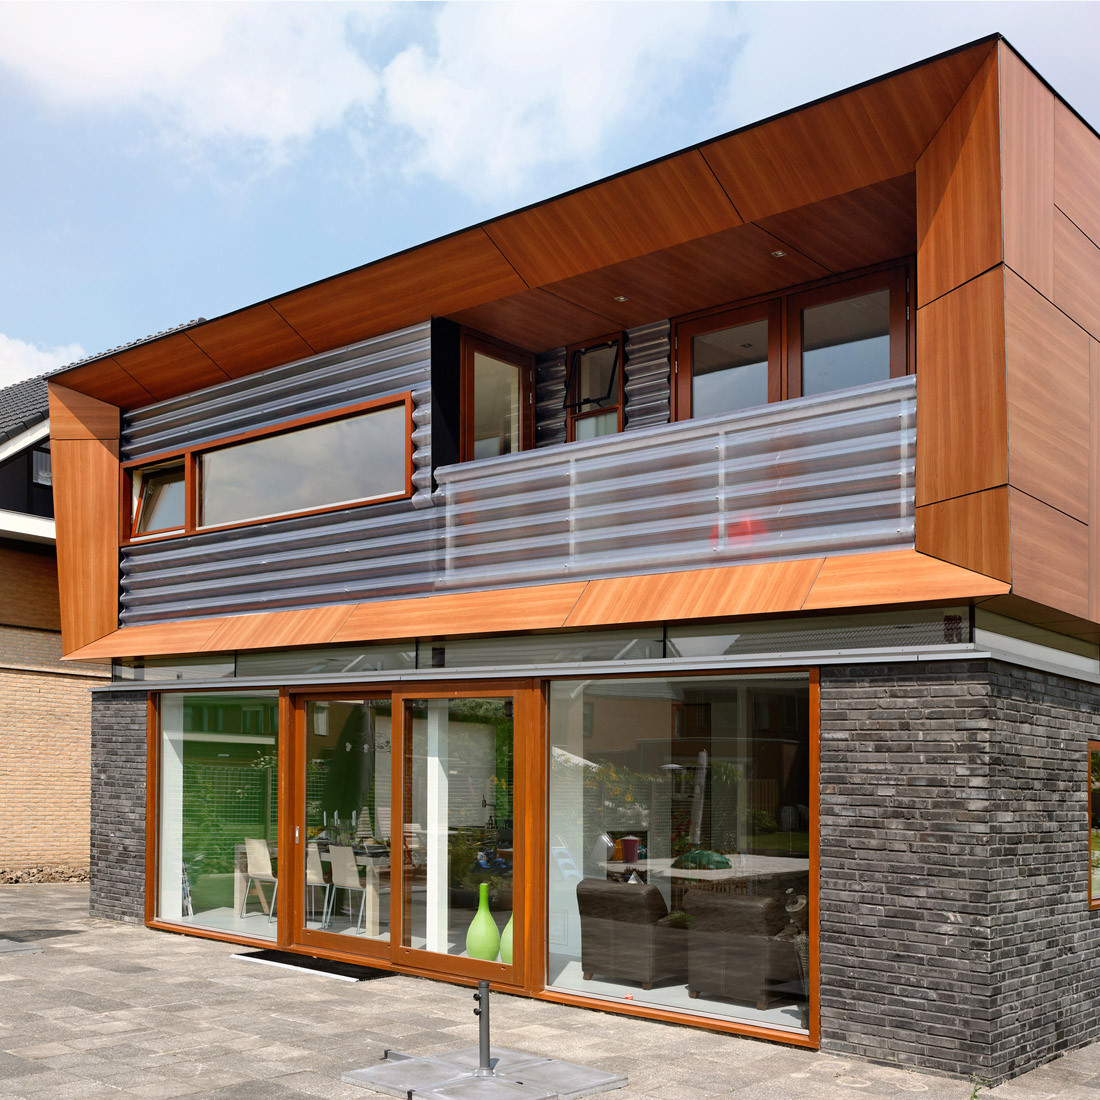 gallery of house baetens / jagerjanssen architecten - 5